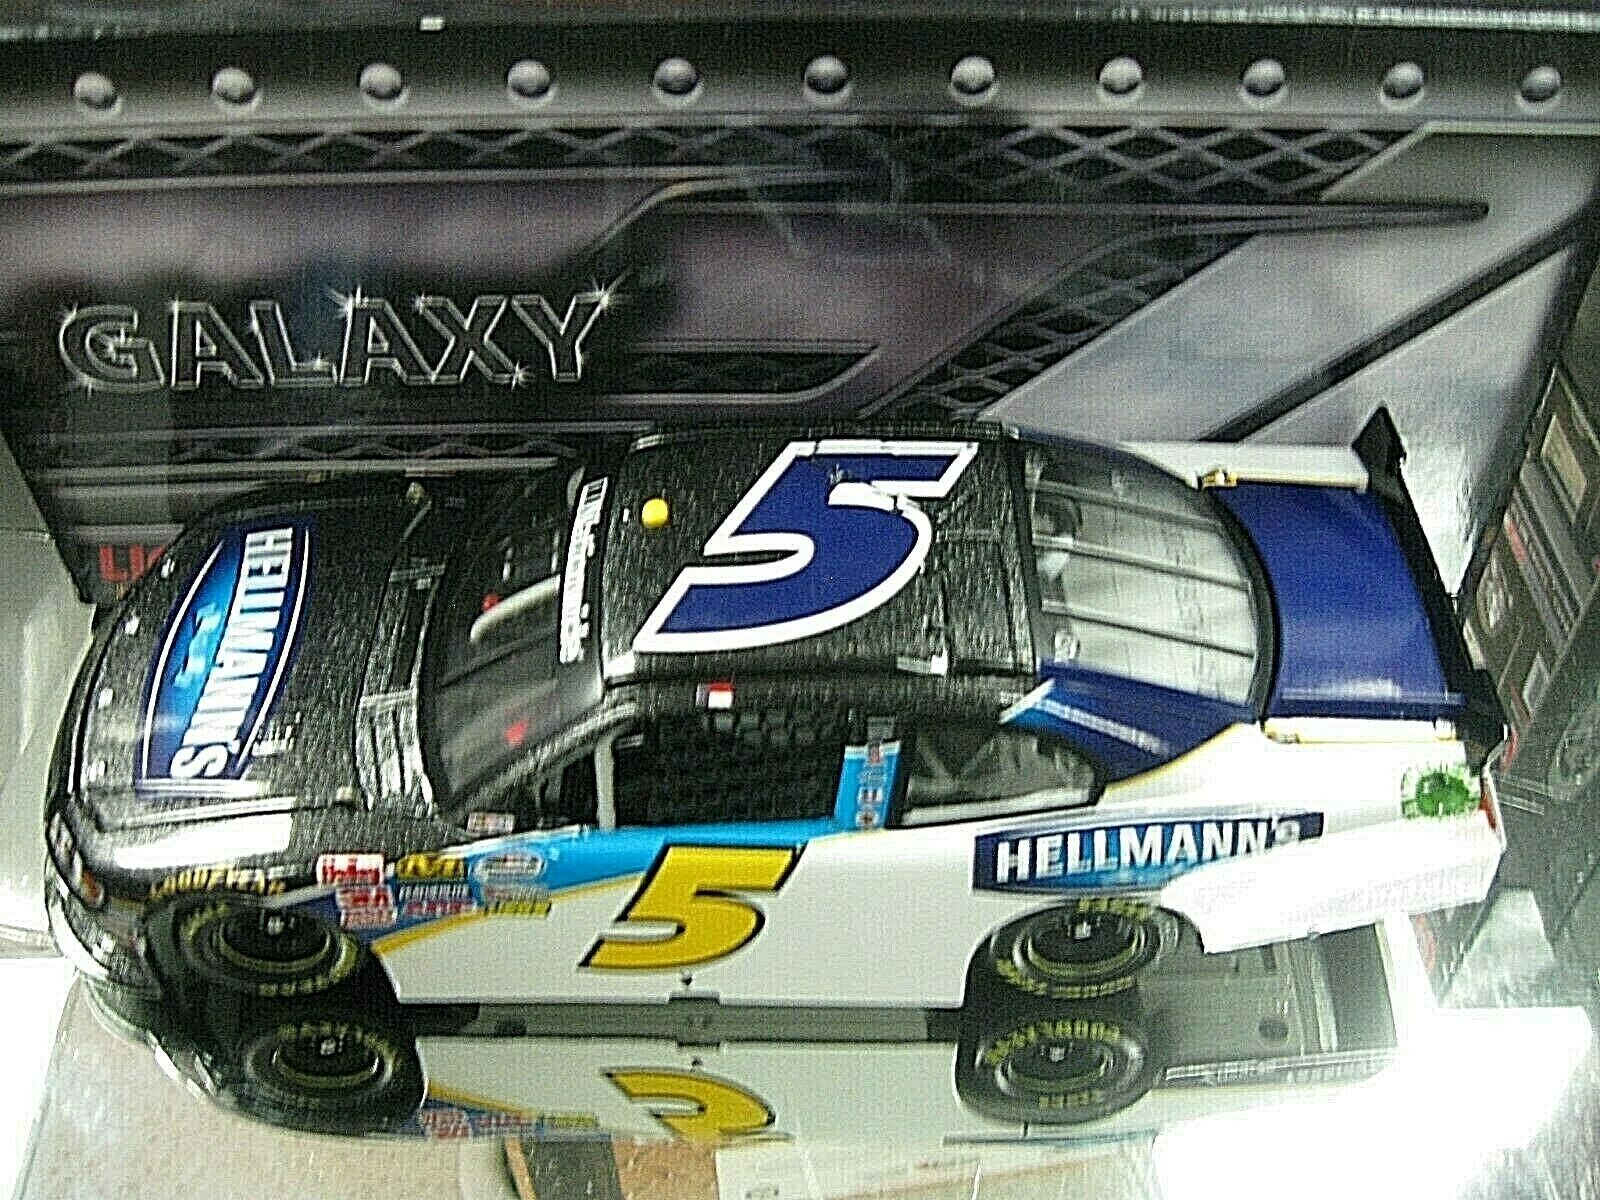 RARE  2012 DALE EARNHARDT JR HELLMANN'S GALAXY FINISH IMPALA JR MOTORSPORTS